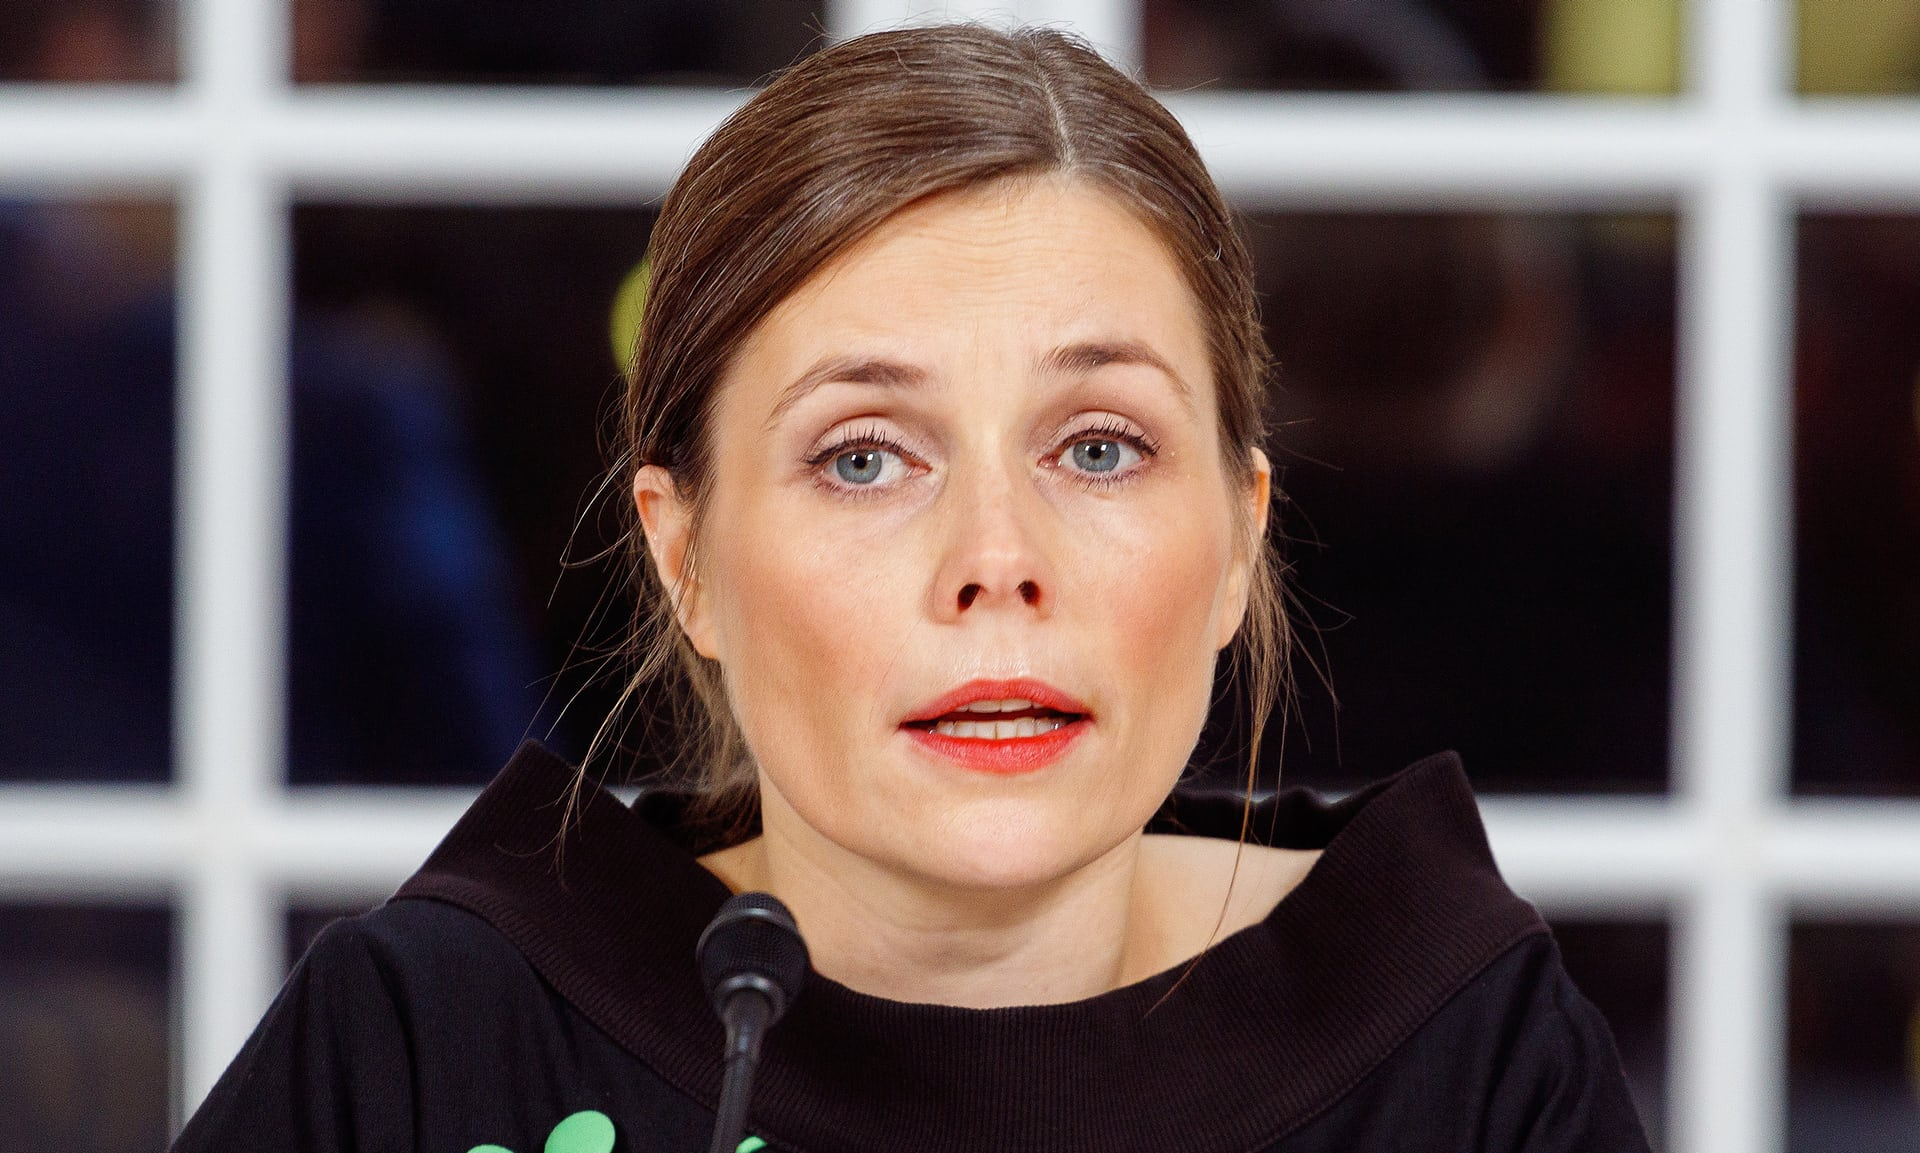 Iceland seeks return to political stability with new prime minister